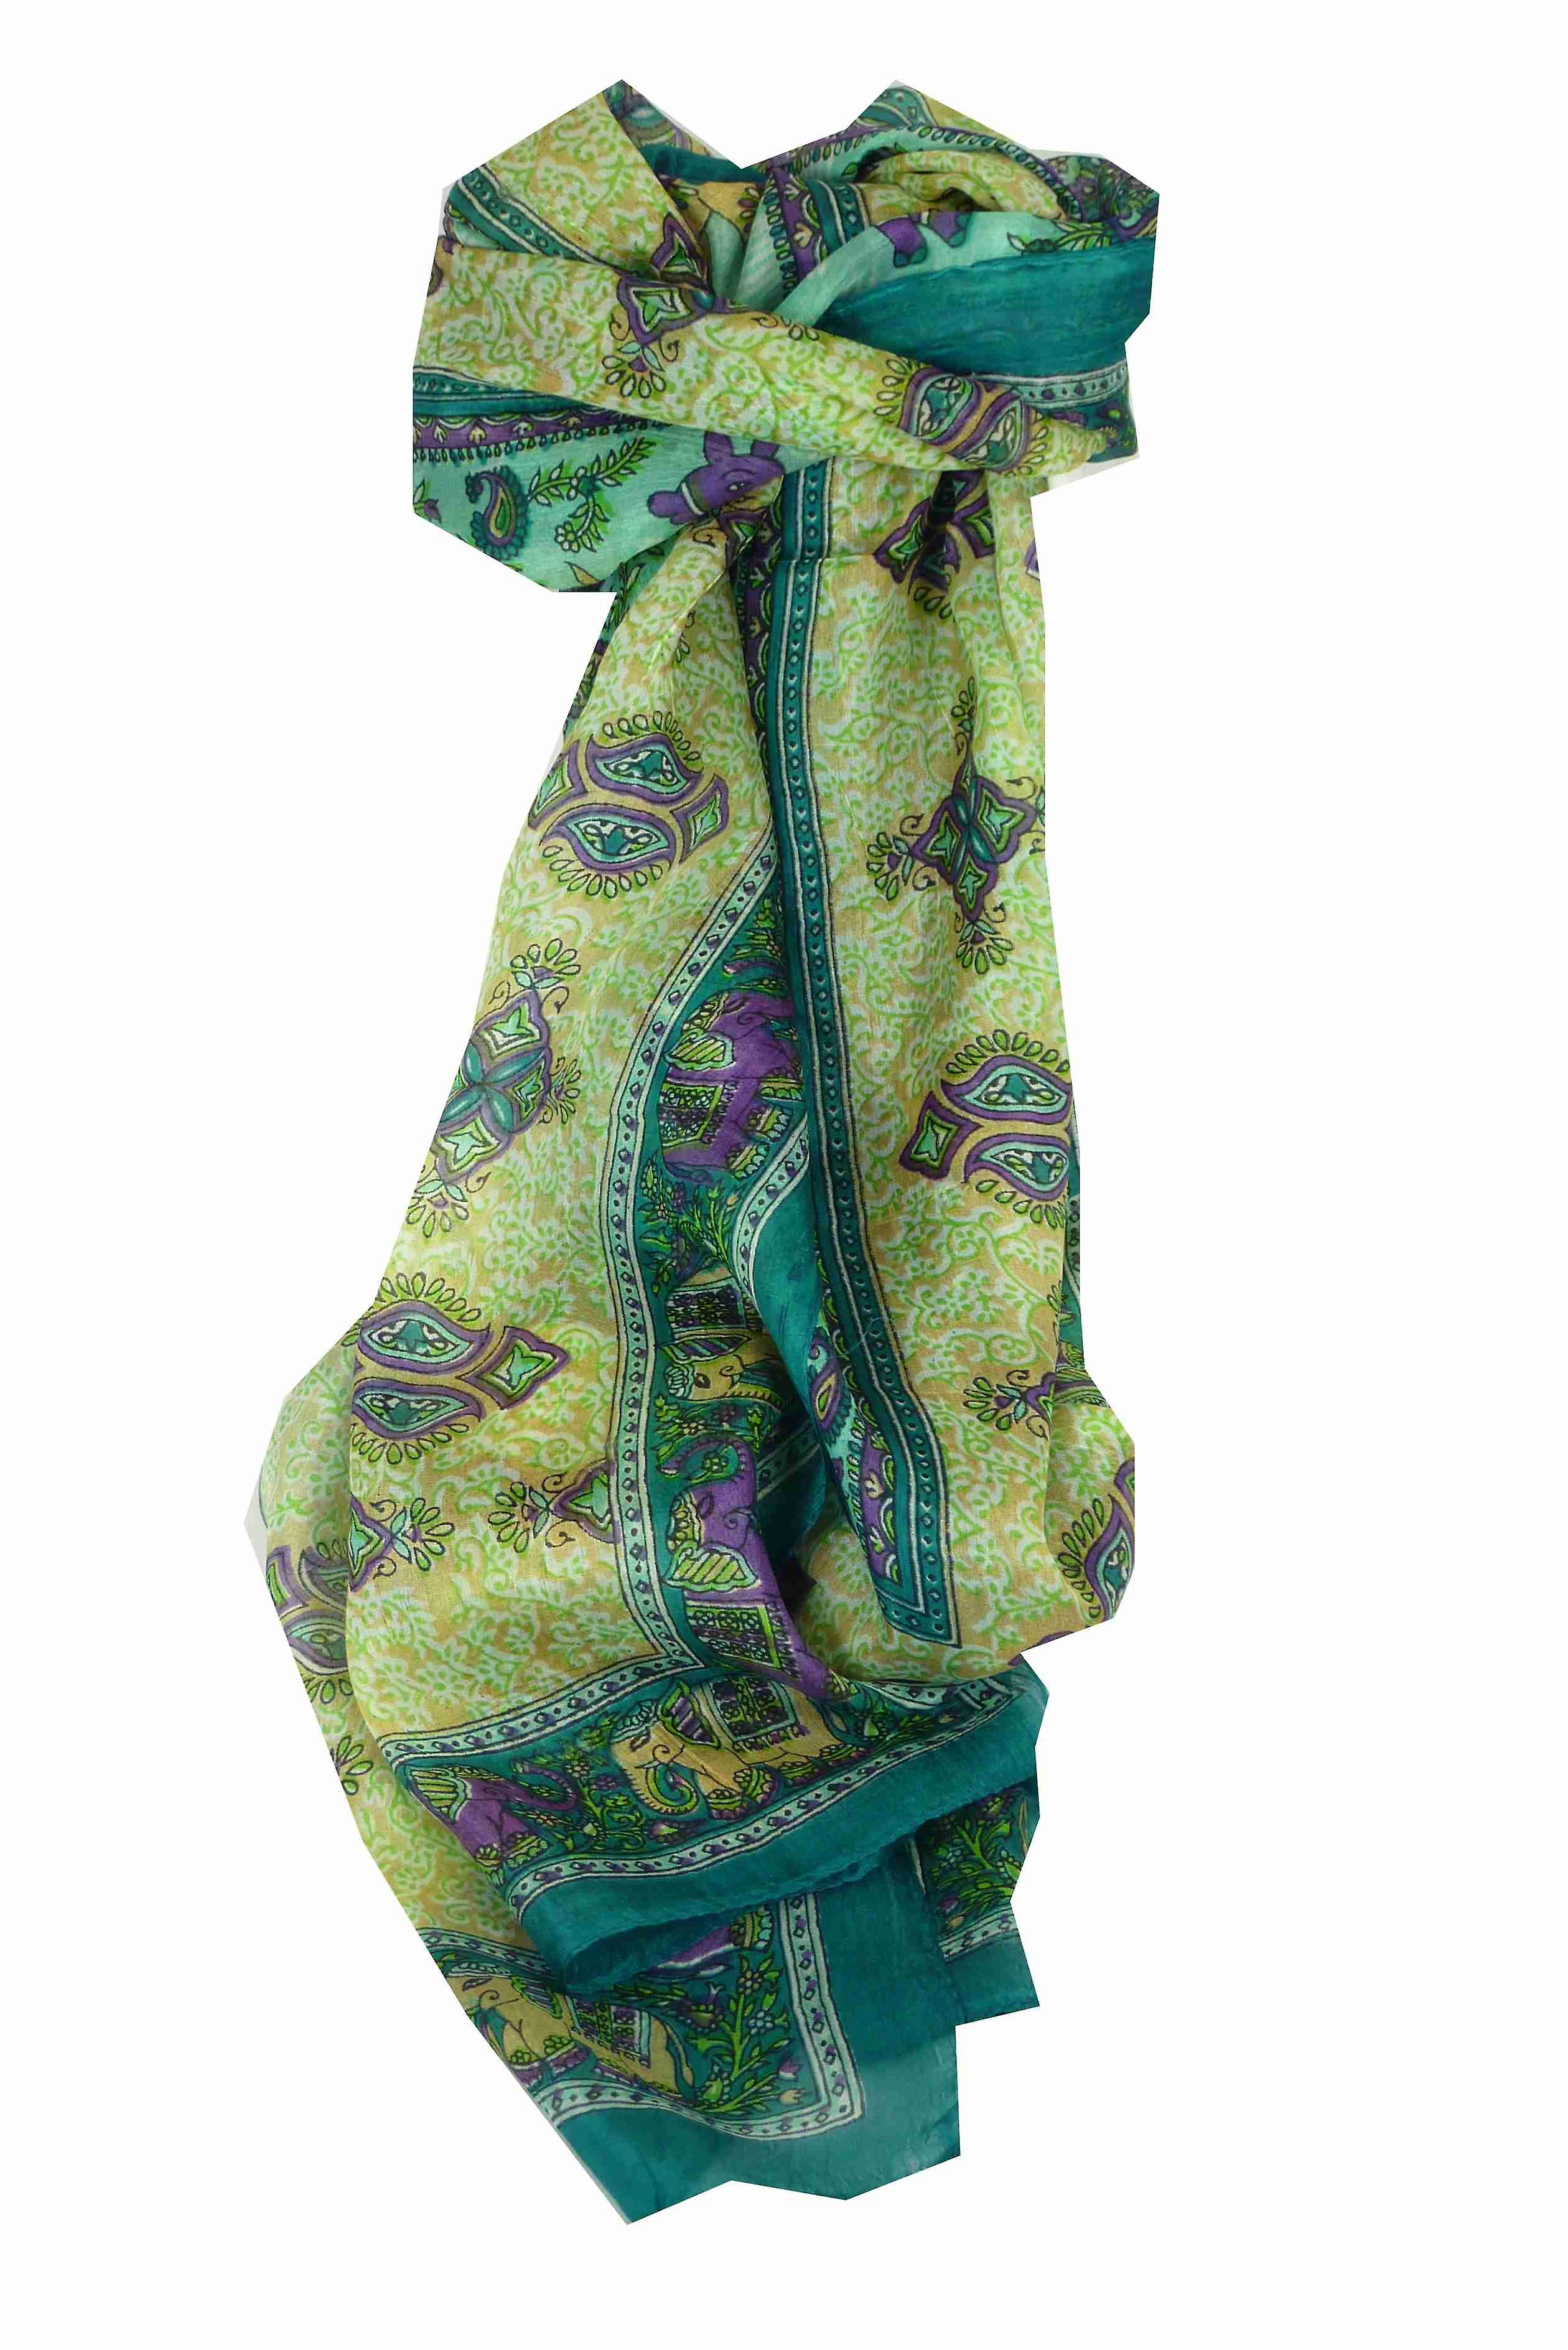 Mulberry Silk Traditional Long Scarf Rei Teal by Pashmina & Silk